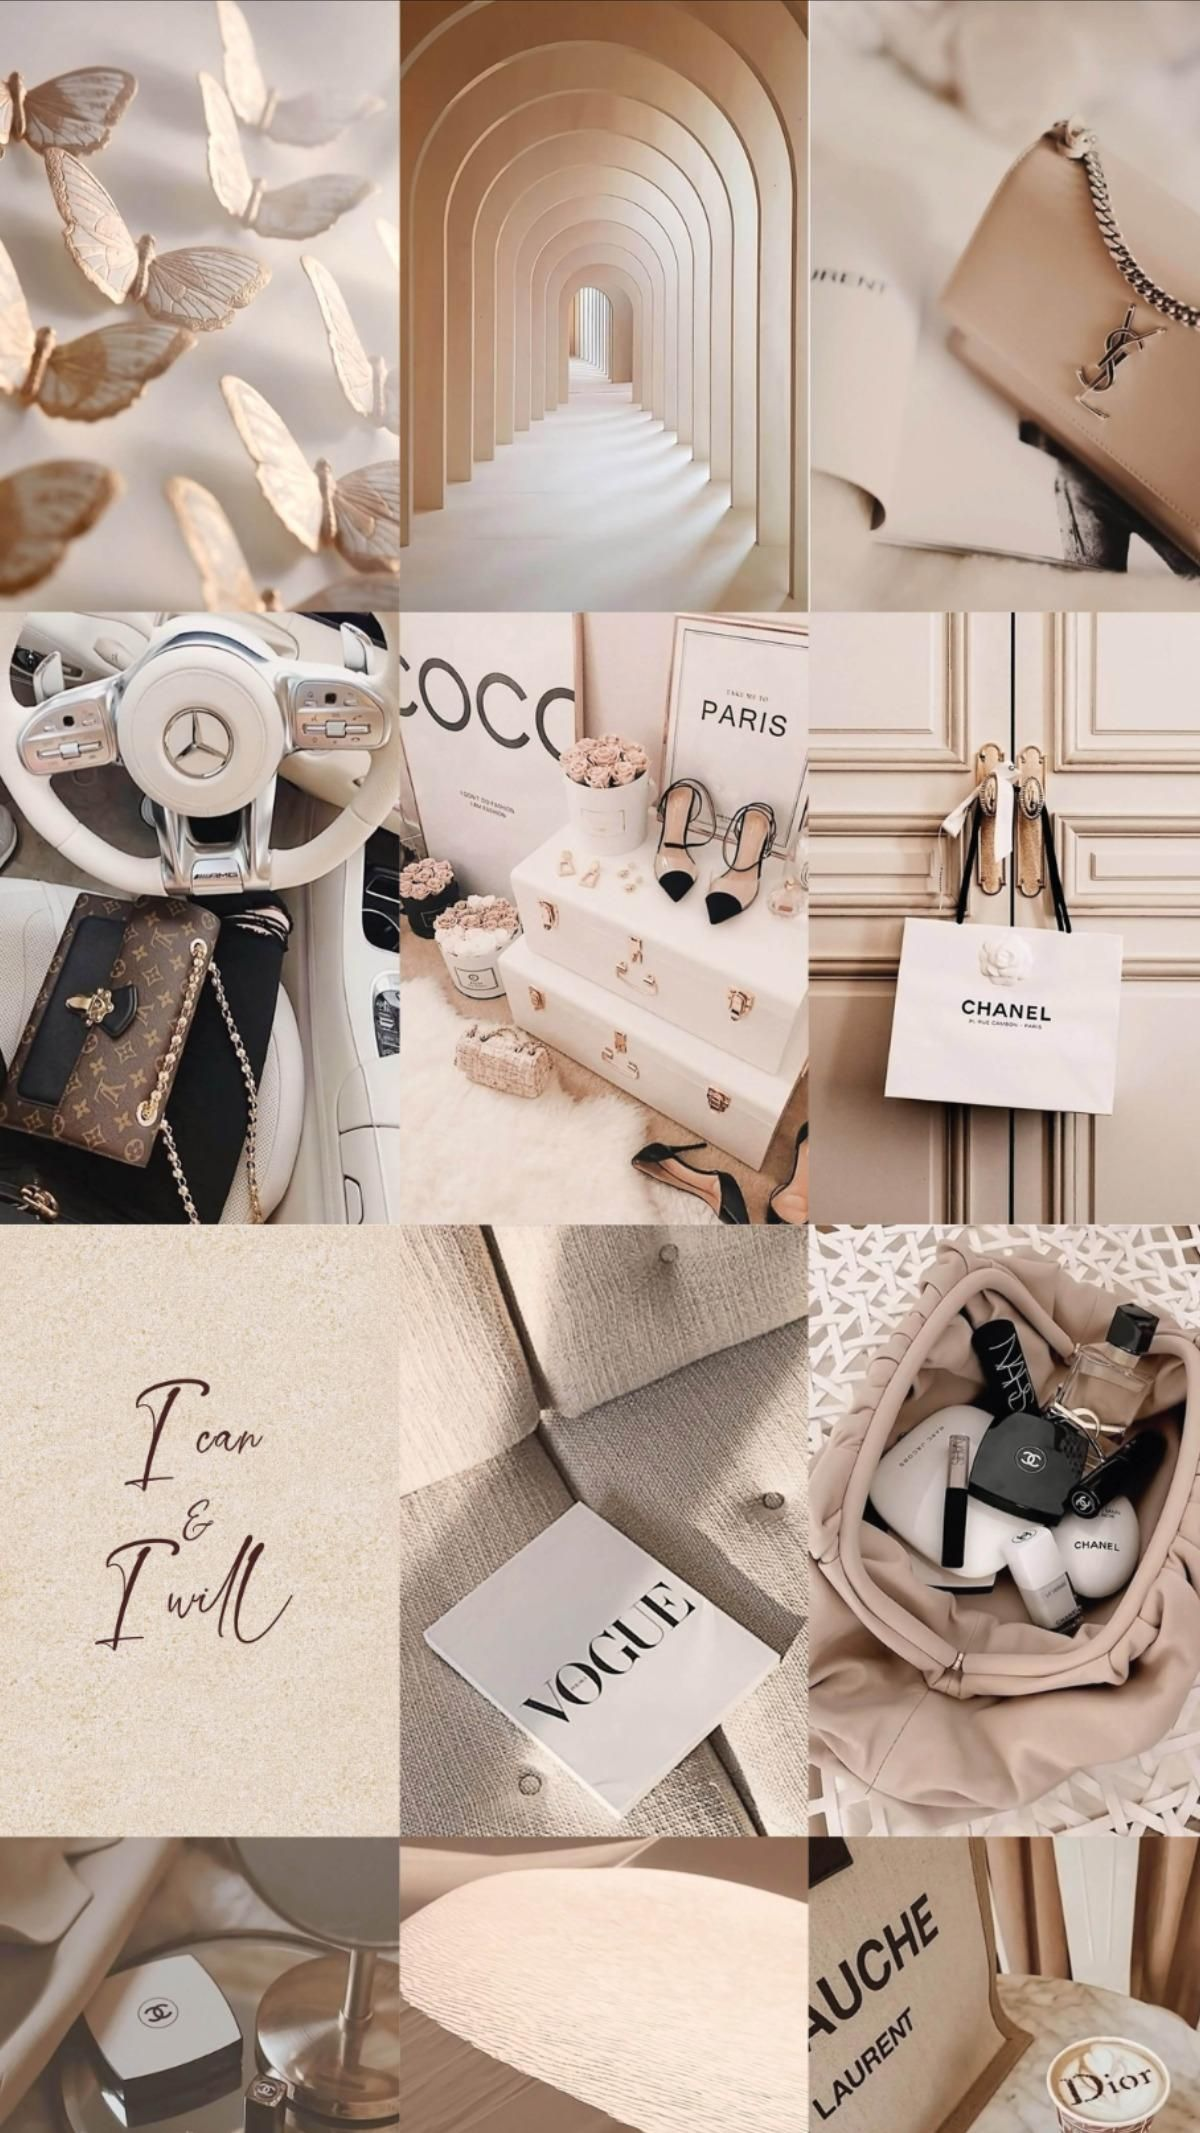 Spice up your room with this aesthetic photo wall collage!